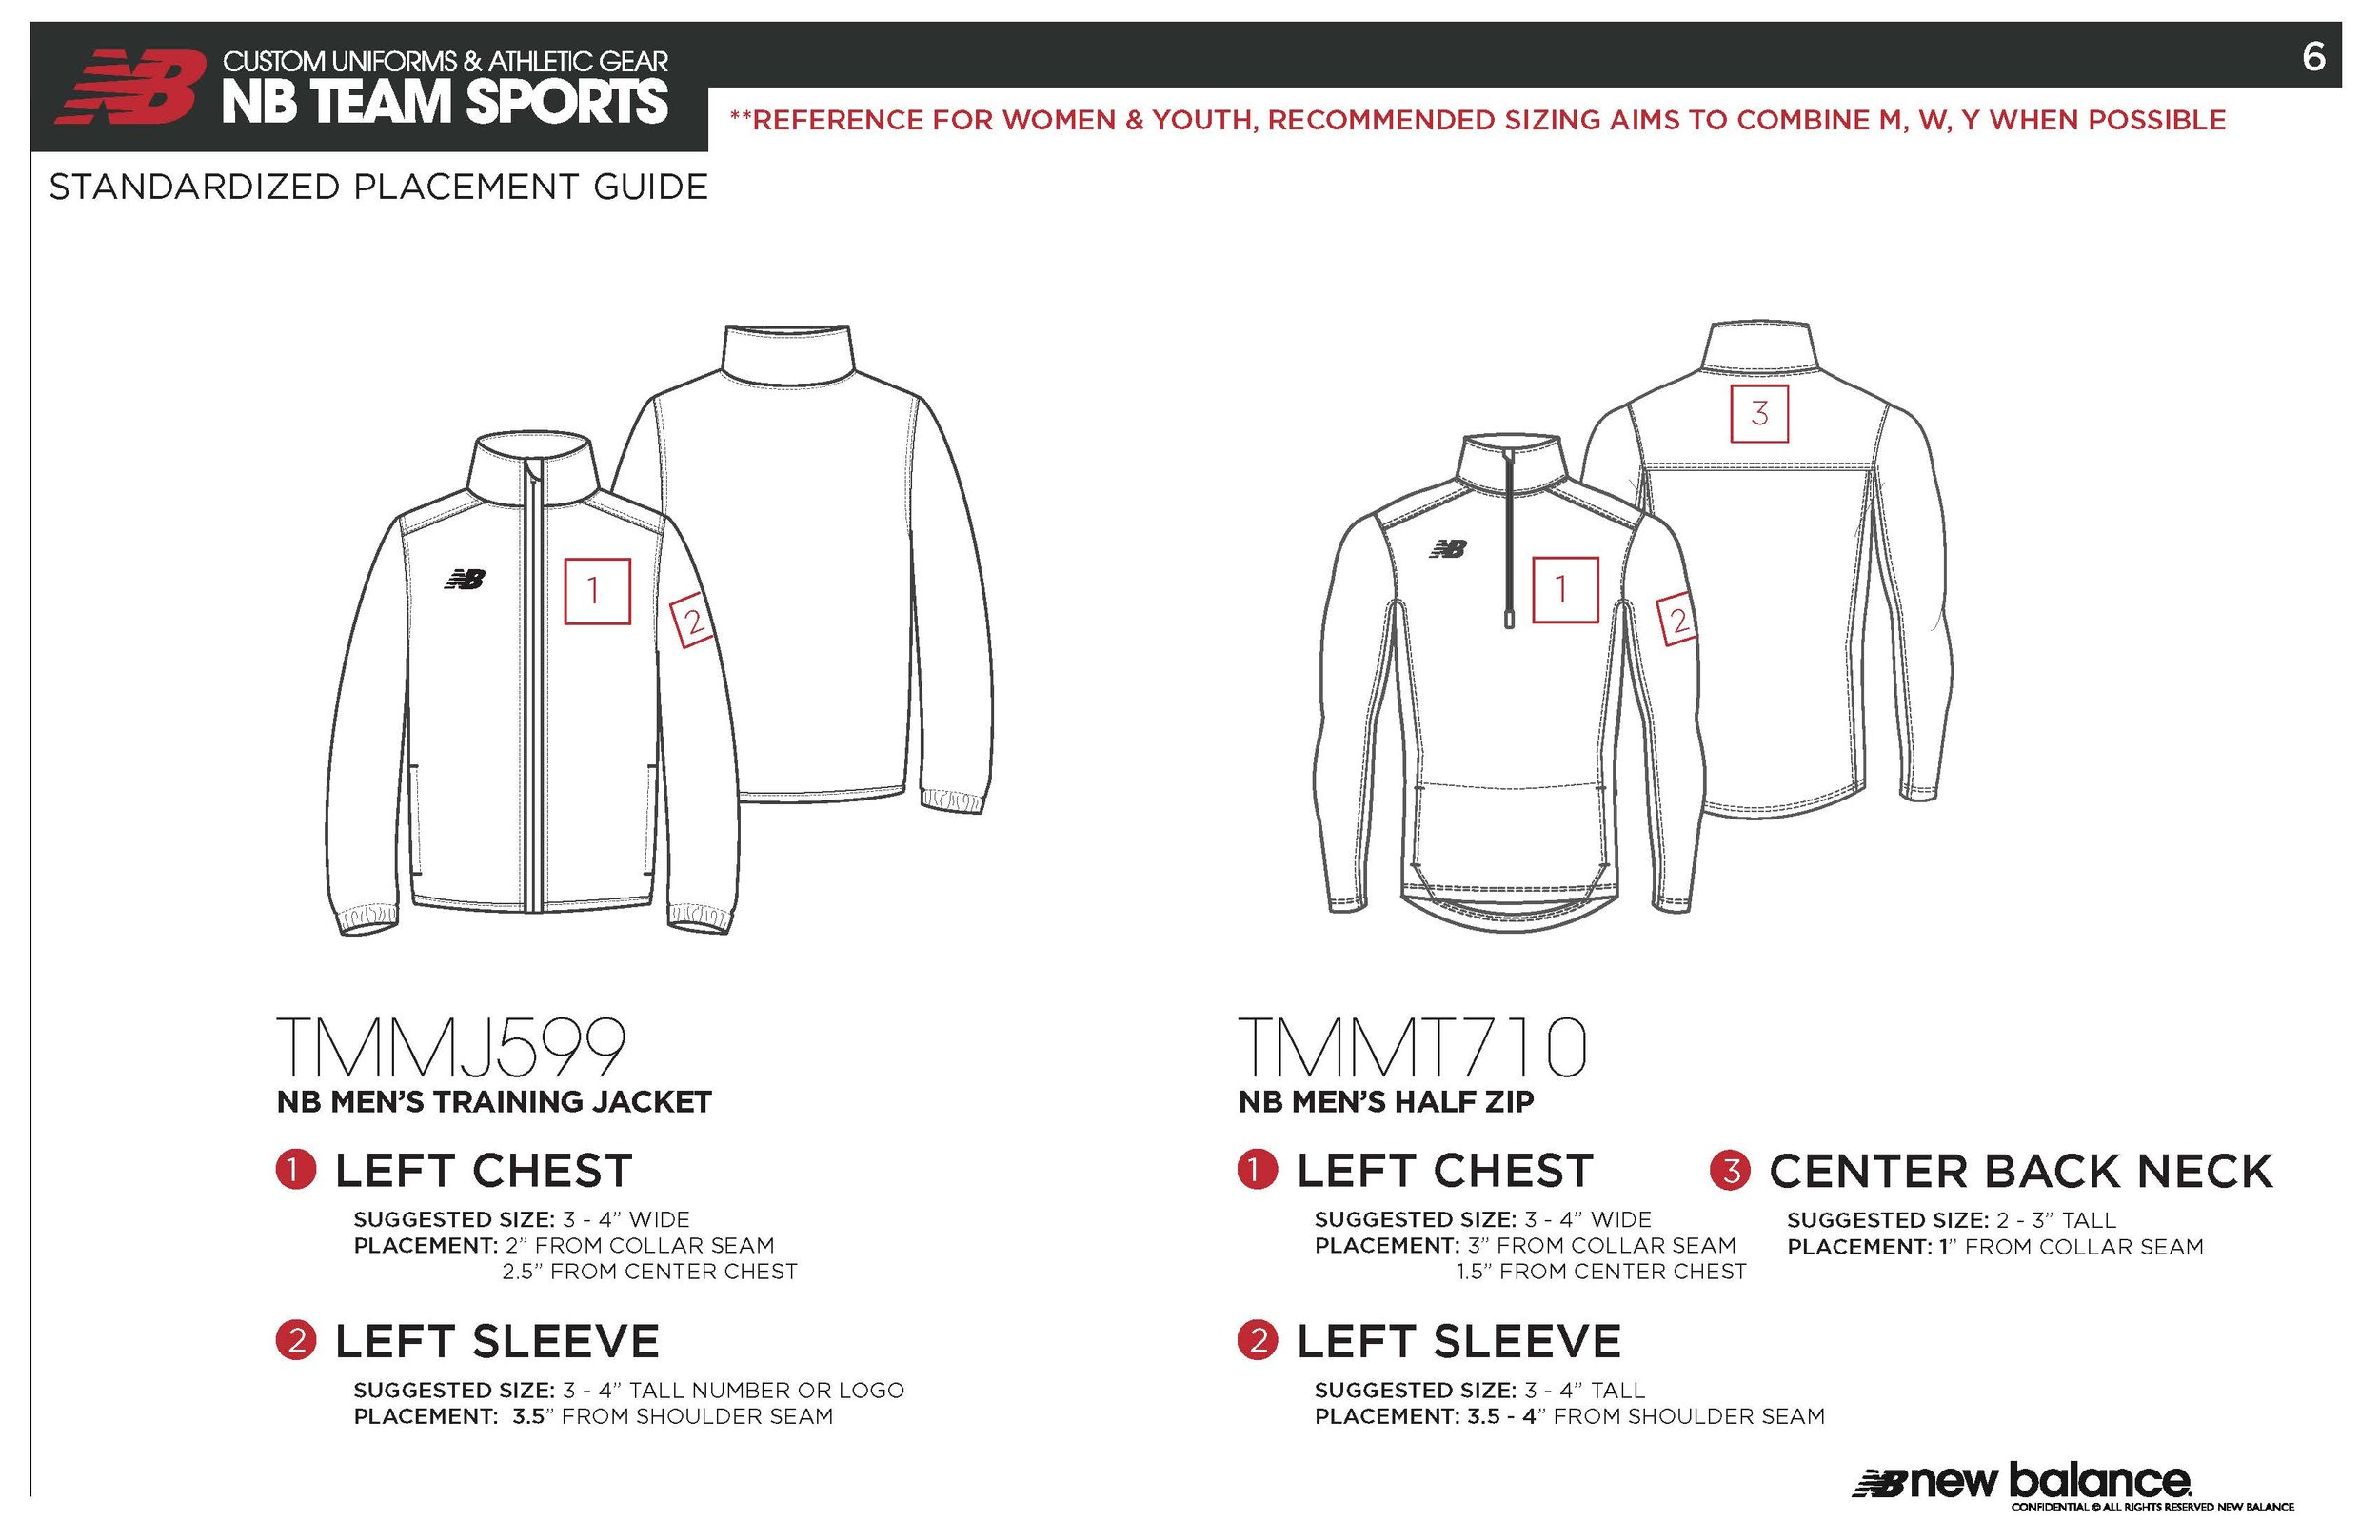 TEAMWEAR_Standardized Placement Guide Final_Page_6.jpg